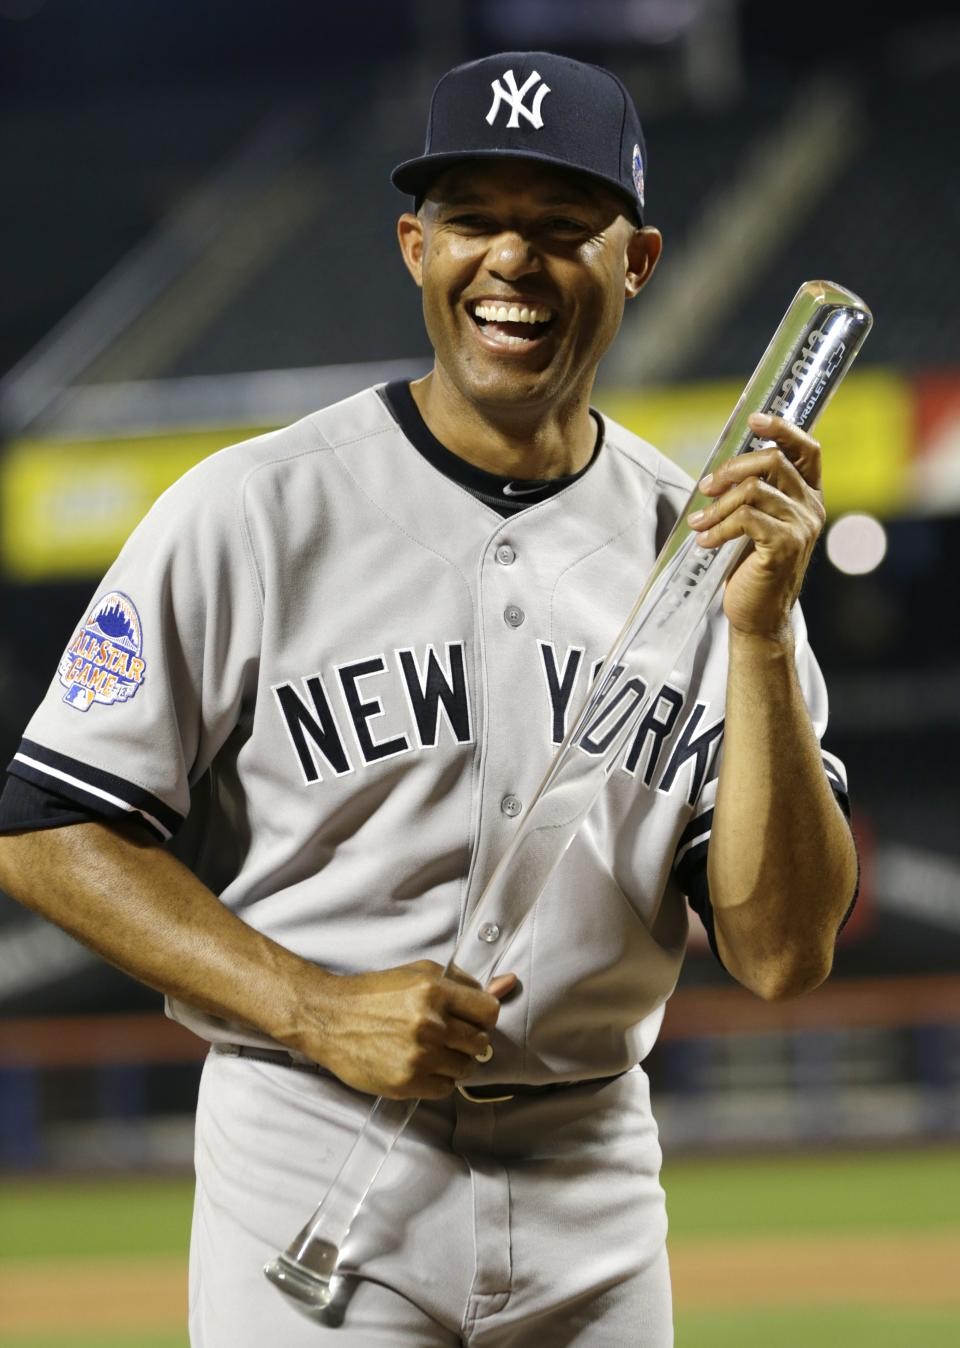 American League's Mariano Rivera, of the New York Yankees, poses with the MVP trophy after the MLB All-Star baseball game, on Tuesday, July 16, 2013, in New York. The American League defeated the National League 3-0. (AP Photo/Kathy Willens)